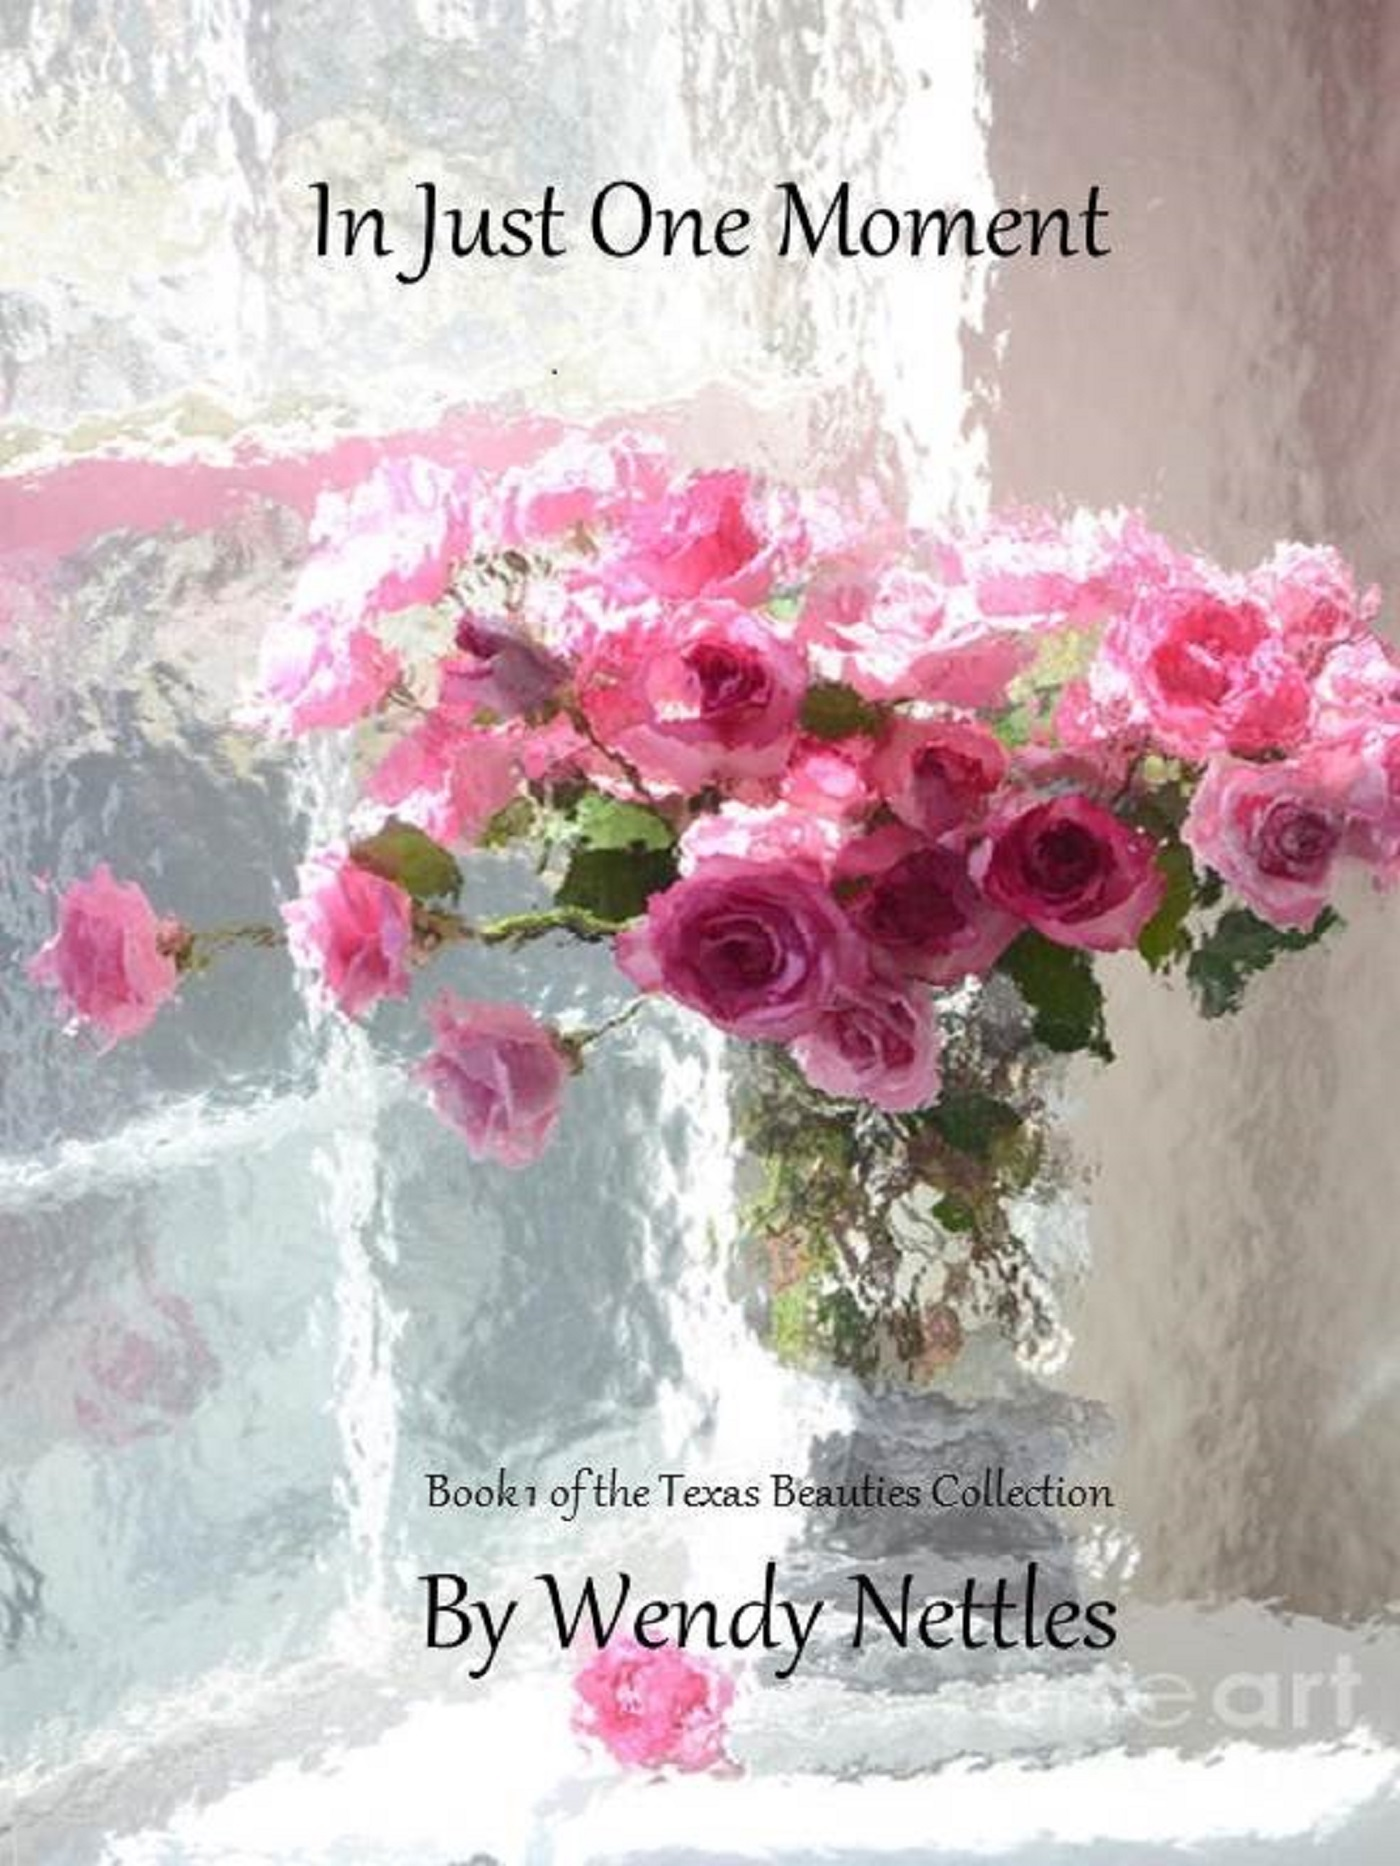 In Just One Moment Wendy Nettles